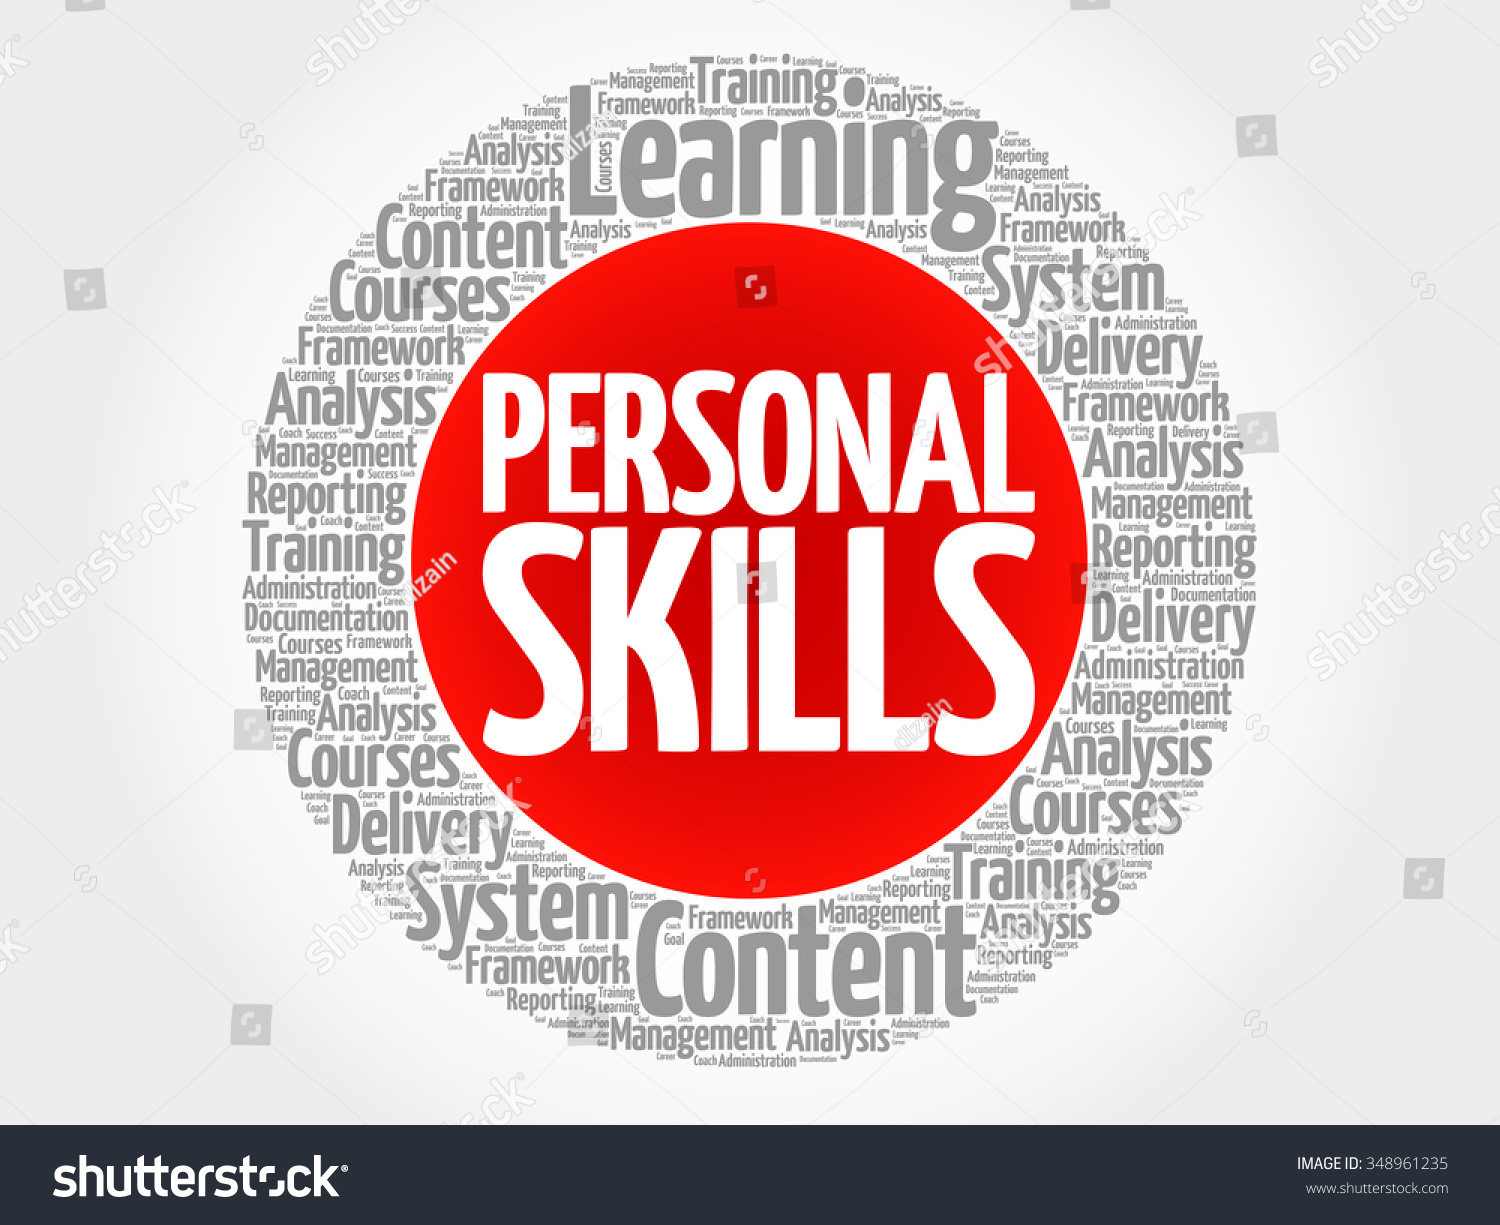 what is personal skills in business